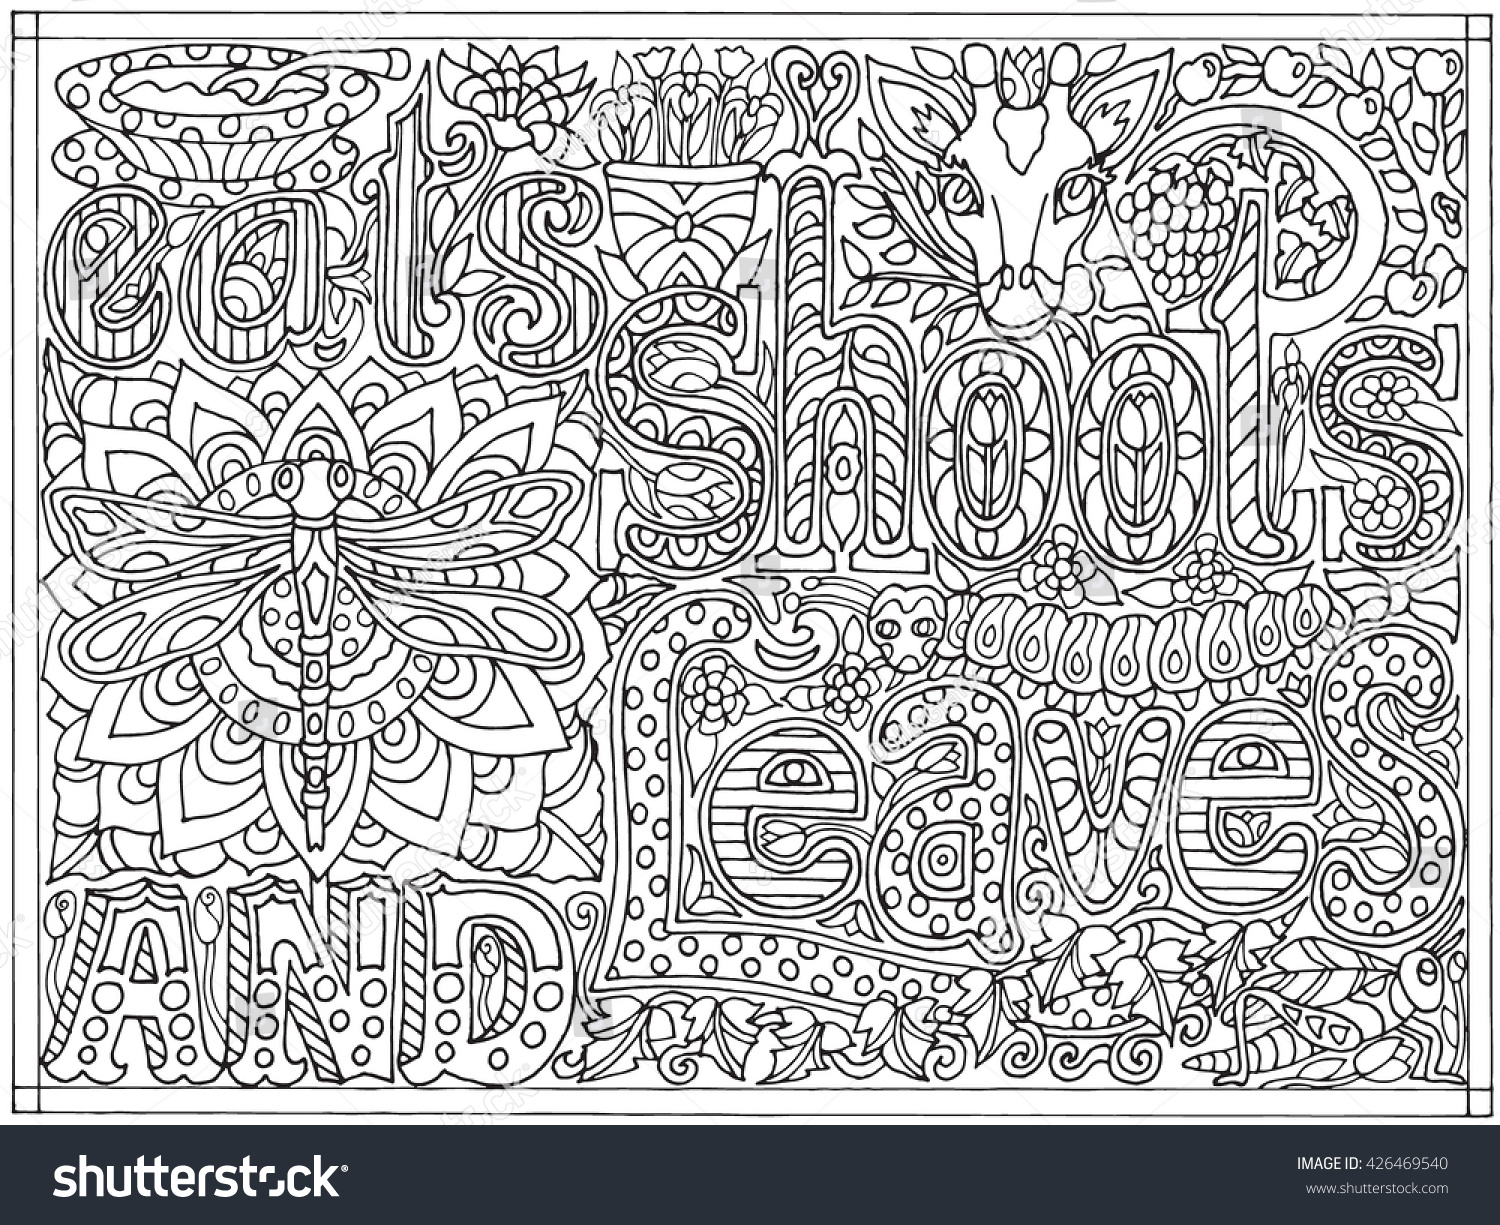 The coloring book poster - Save To A Lightbox